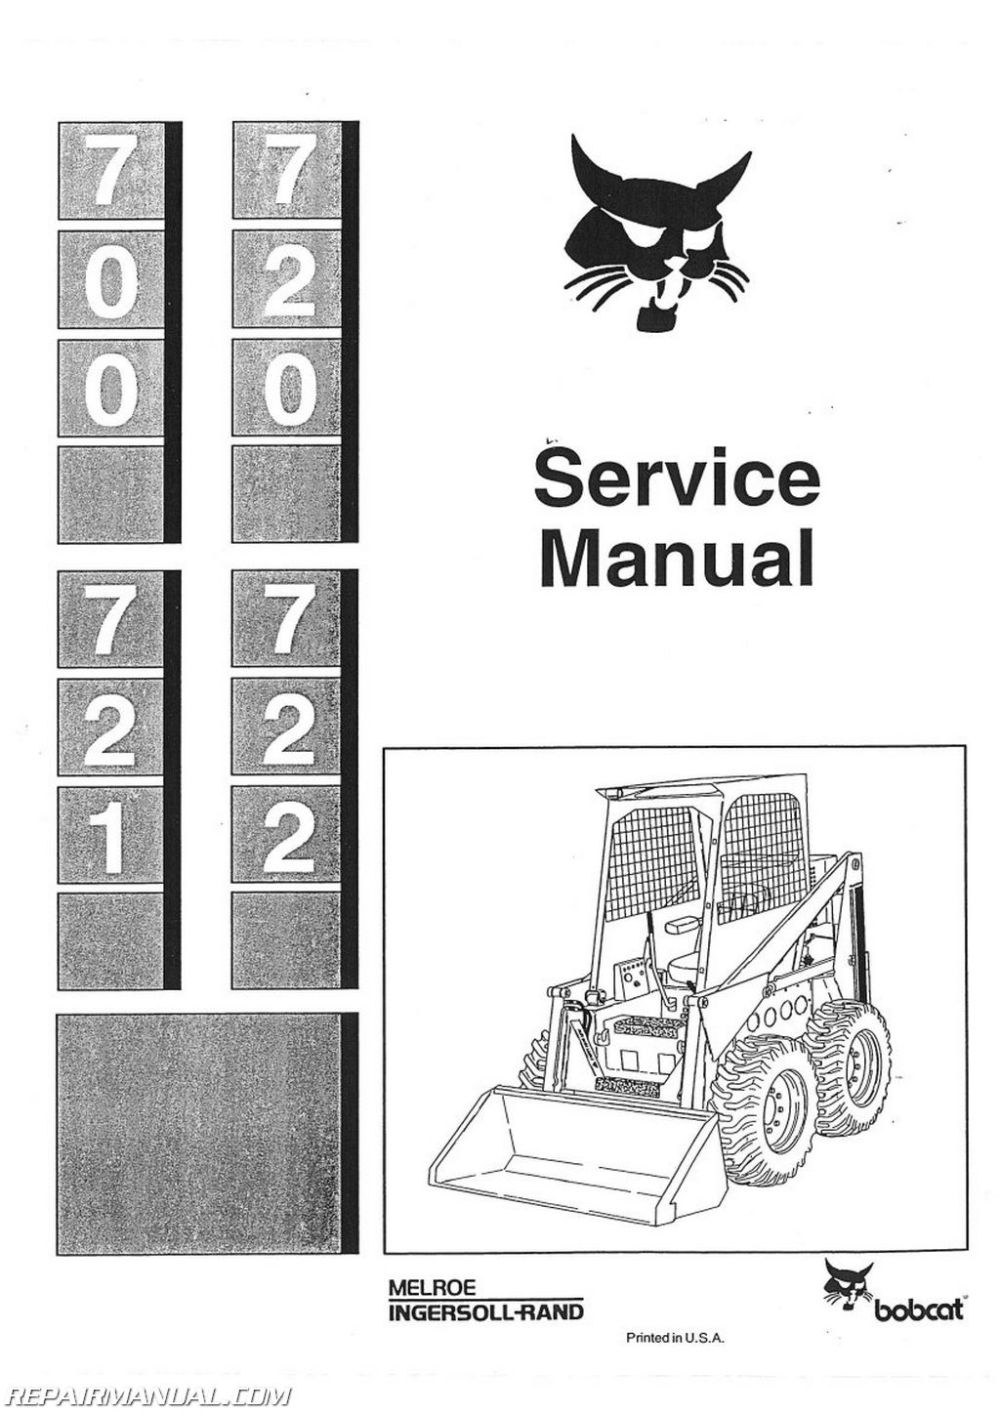 medium resolution of bobcat 700 720 721 722 skid steer service manual jpg